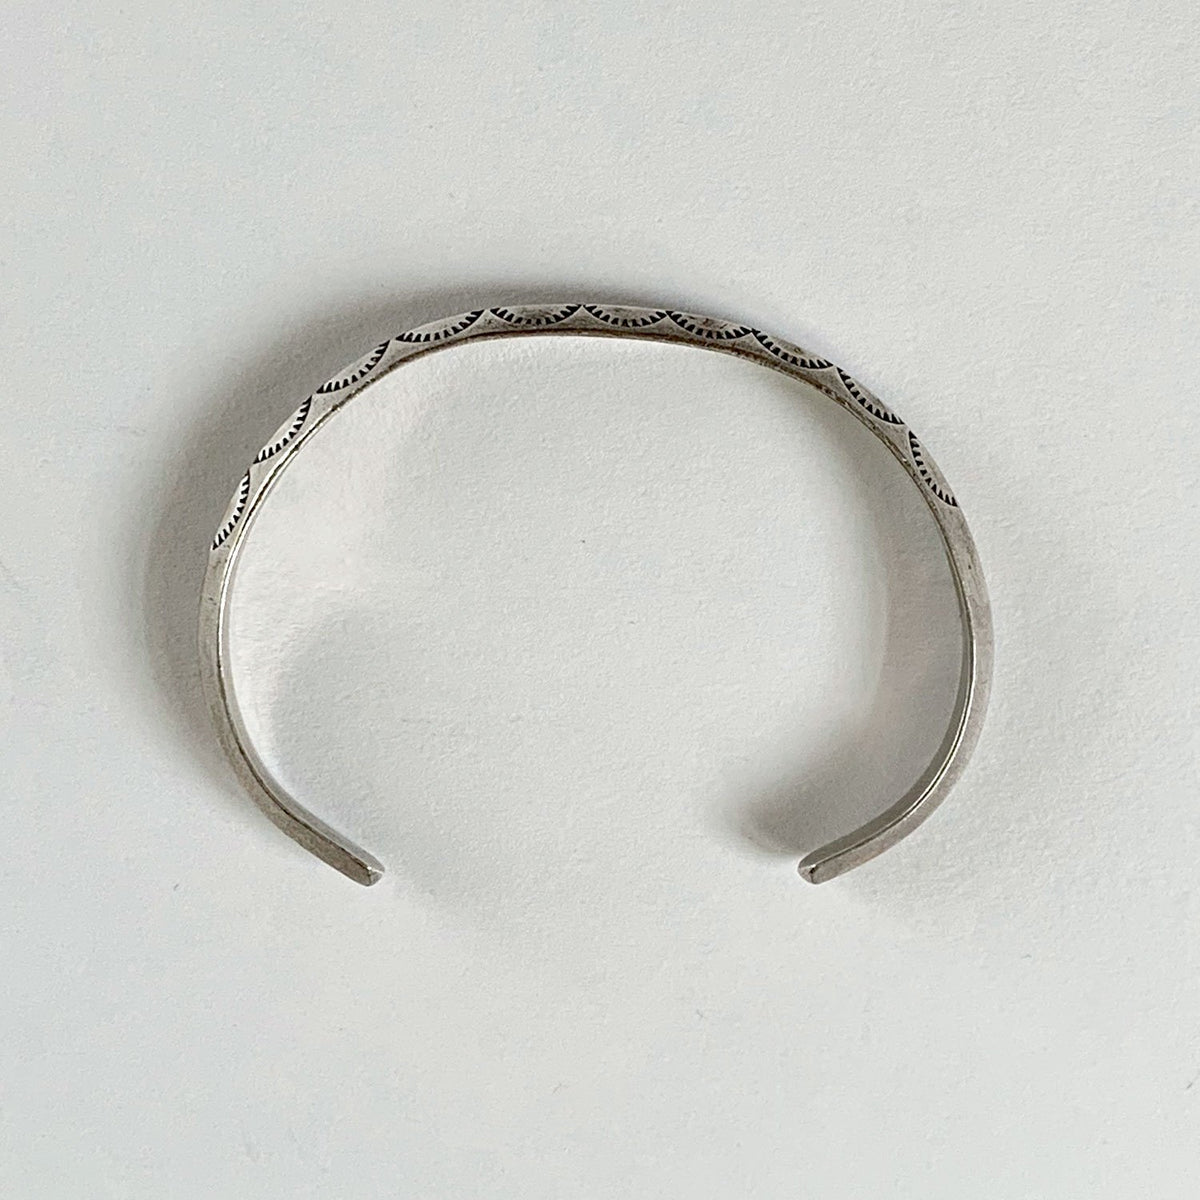 Vintage Sterling Carinated Cuff Bracelet